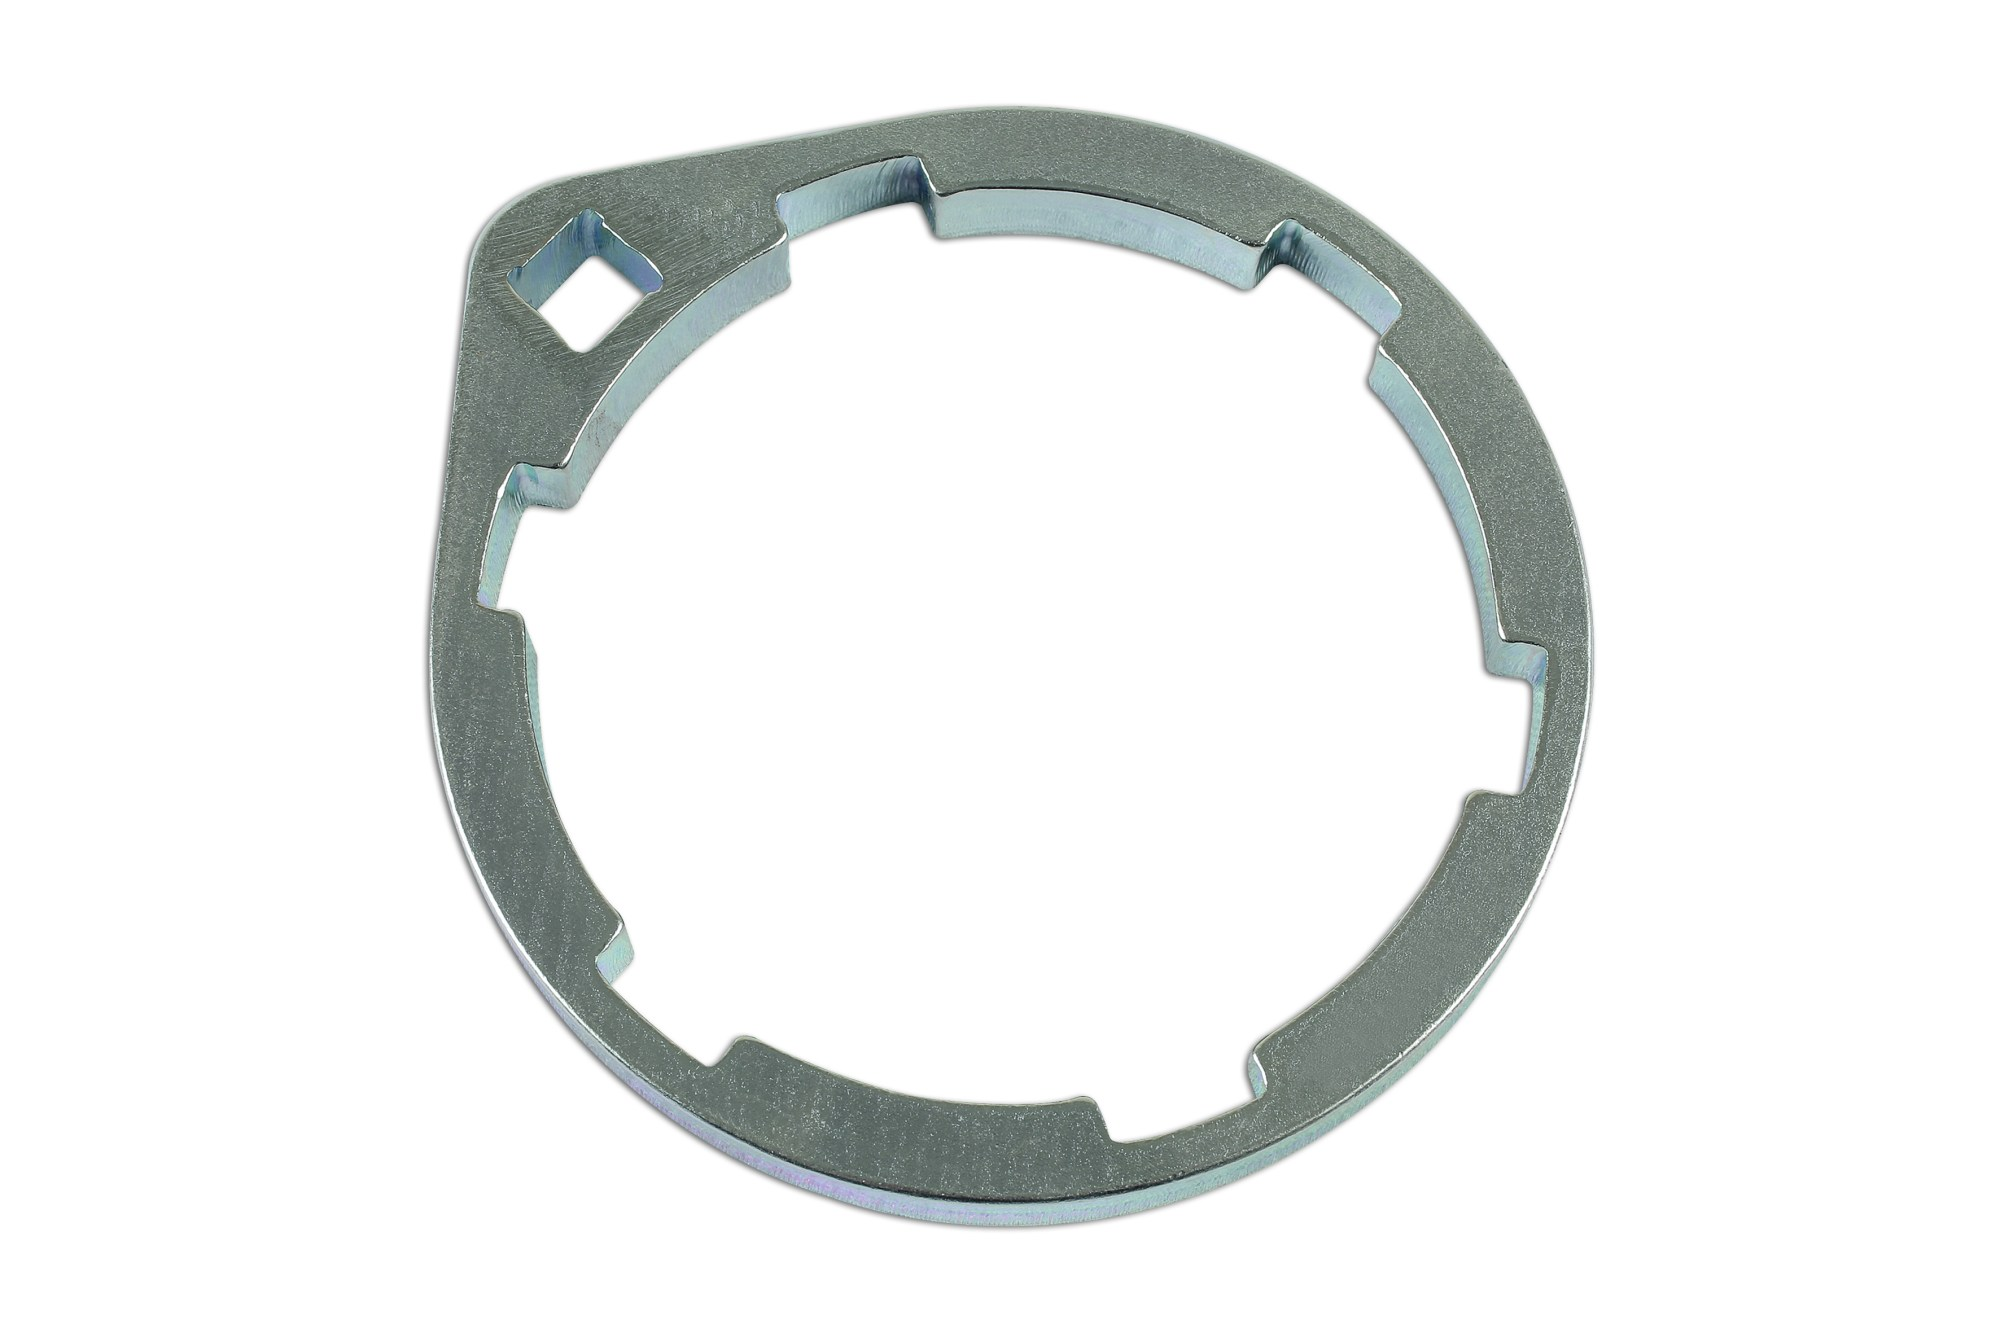 hight resolution of sentinel laser tools 6238 diesel fuel filter wrench volvo